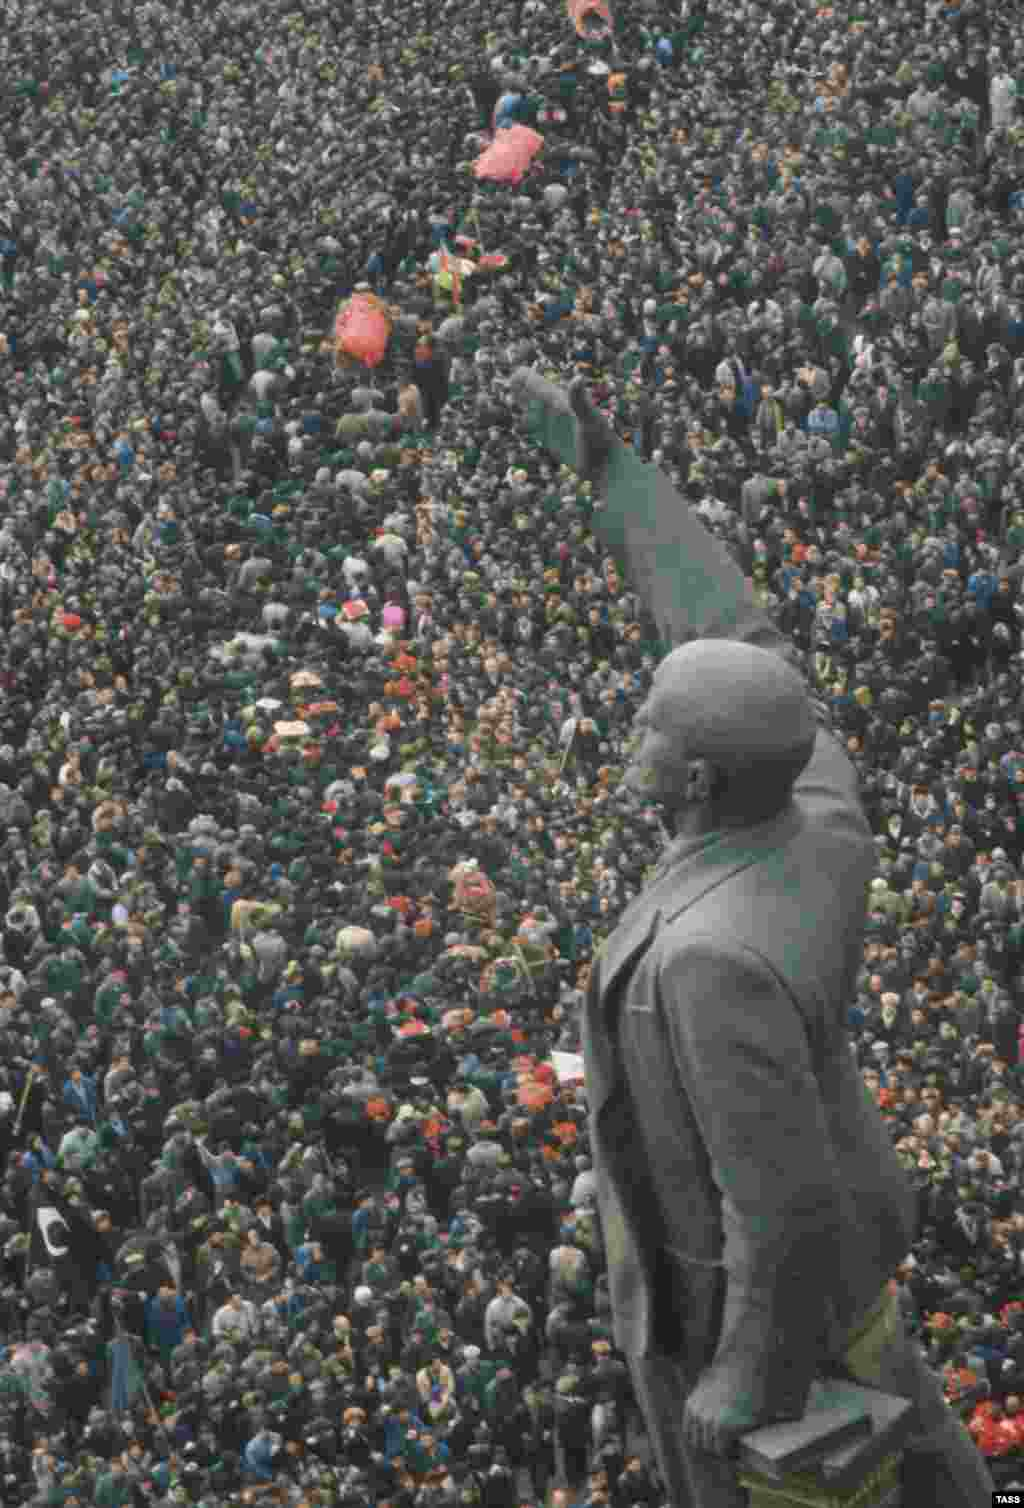 Another scene of mass crowds at a funeral - a statue of Lenin looks on, but the Soviet Union's days are numbered.